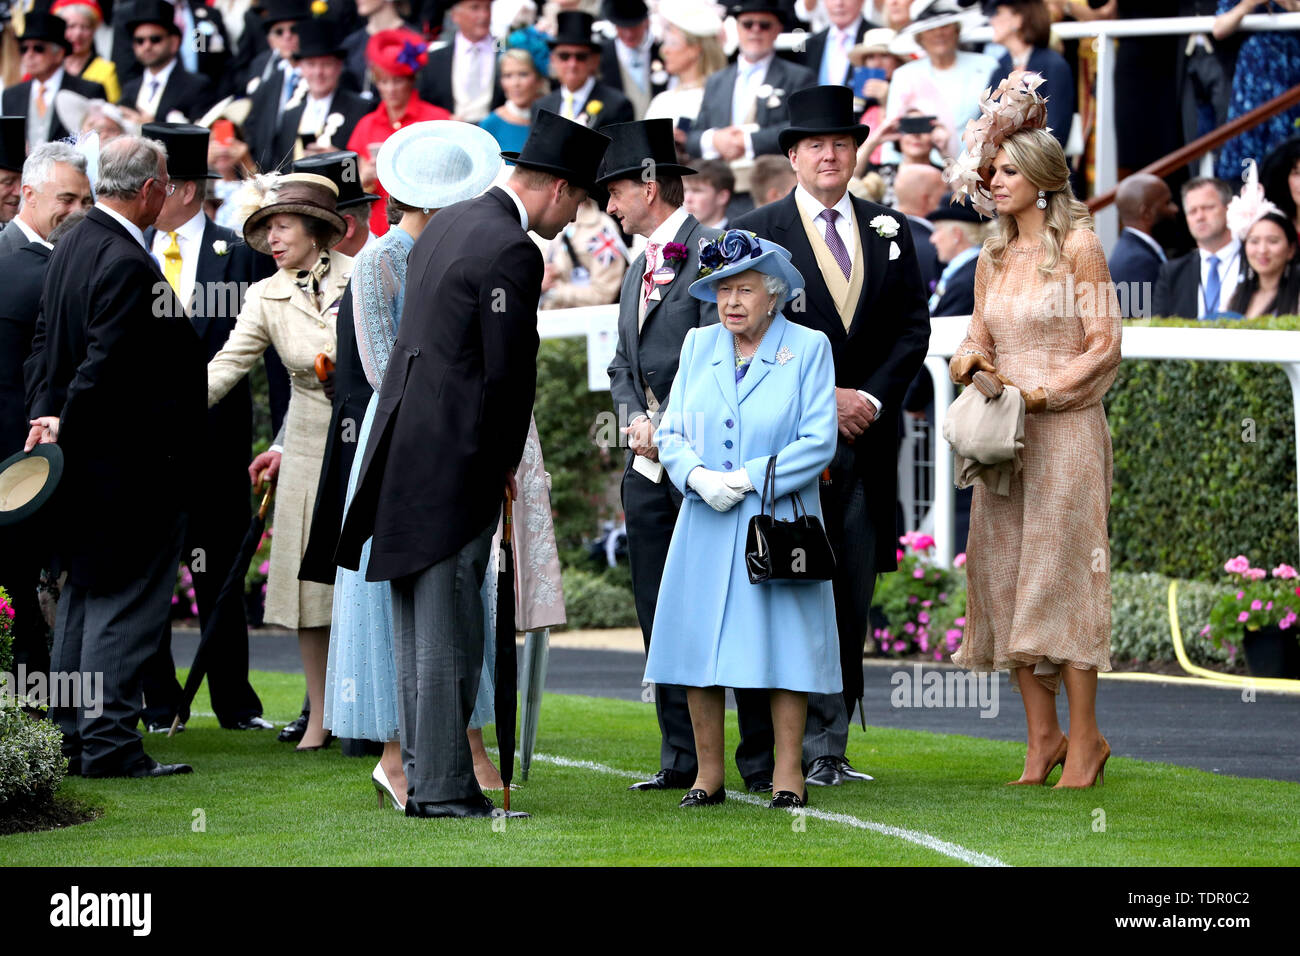 The Princess Royal, Anne (fourth left), The Duchess of Cambridge, Duke of Cambridge, Queen Elizabeth II, King Willem-Alexander of the Netherlands and Queen Maxima of the Netherlands attending day one of Royal Ascot at Ascot Racecourse. Stock Photo